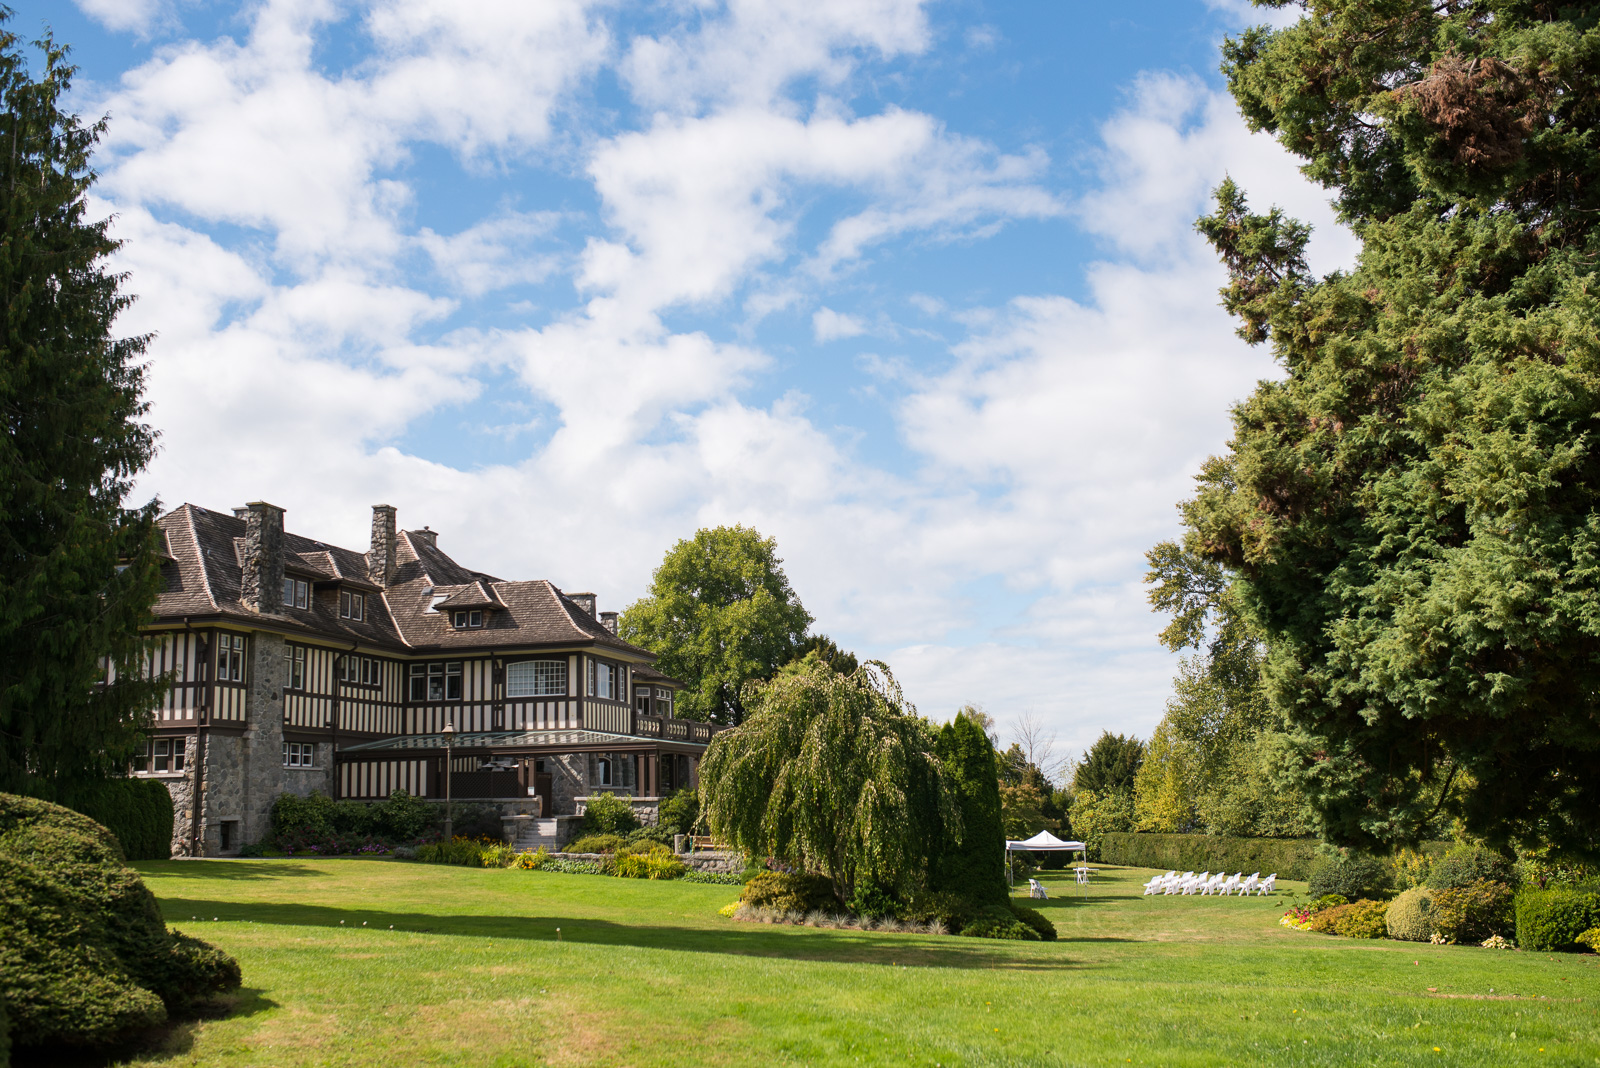 cecil green park house on ubc campus in vancouver - victoria wedding photographers